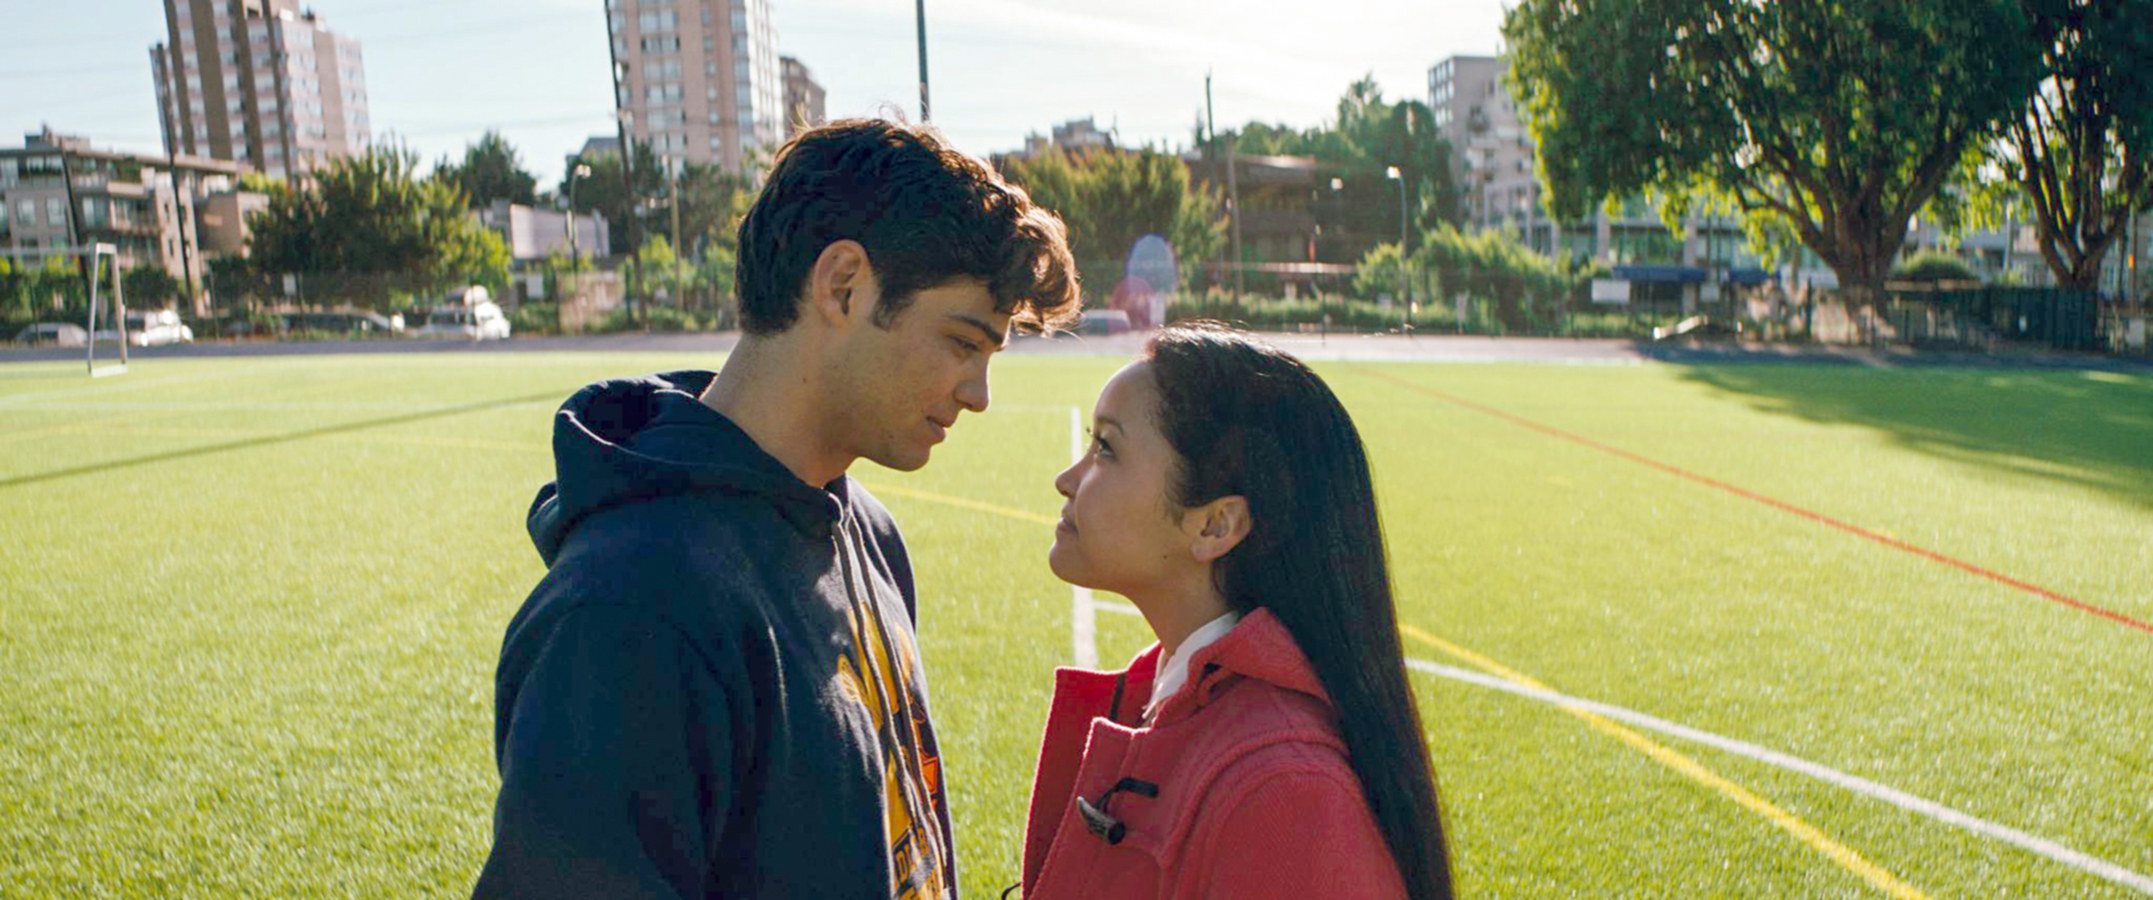 Noah Centineo looks into Lana Condor's eyes in To All the Boys I've Loved Before